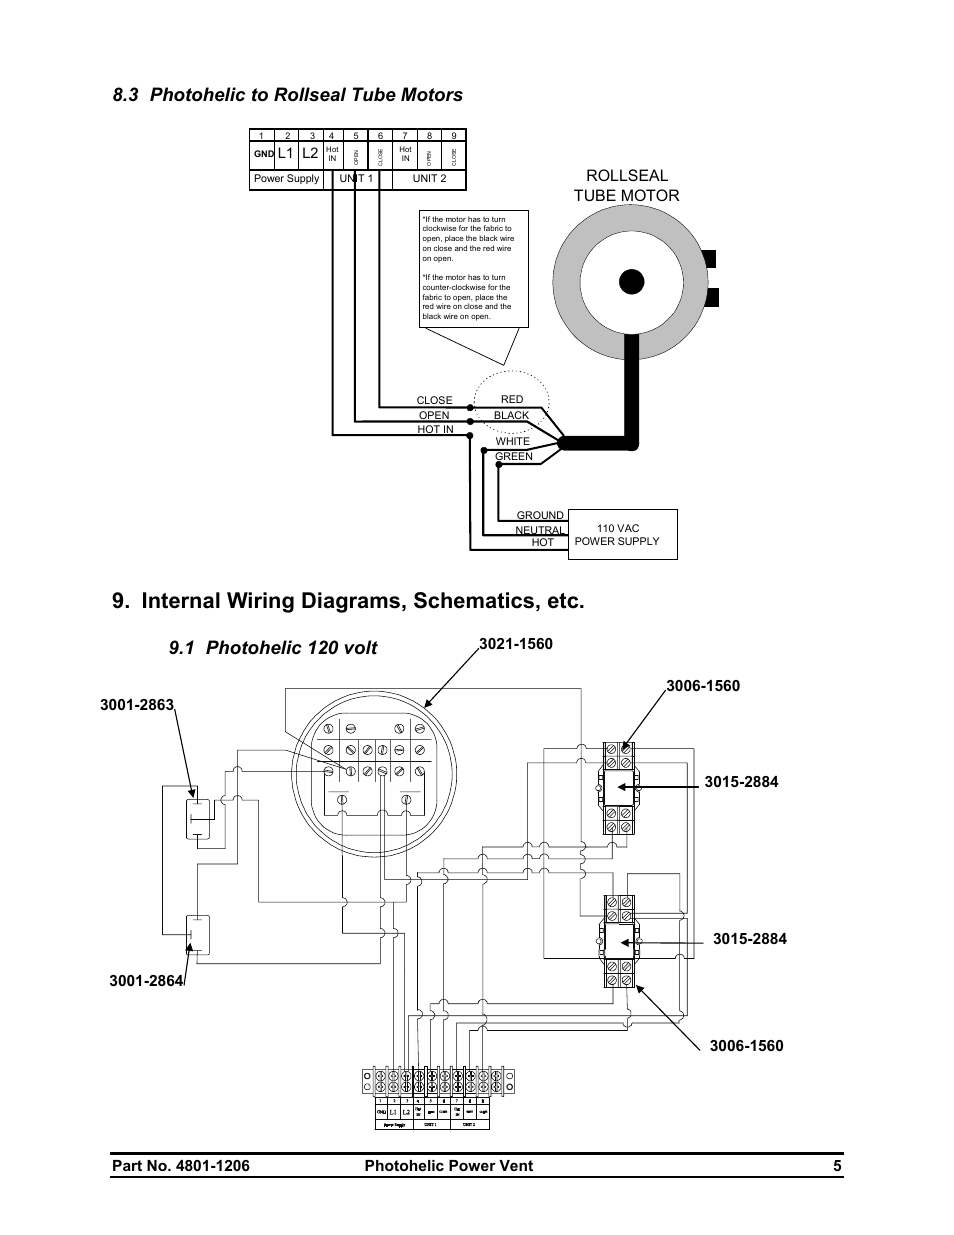 medium resolution of internal wiring diagrams schematics etc 3 photohelic to rollseal tube motors 1